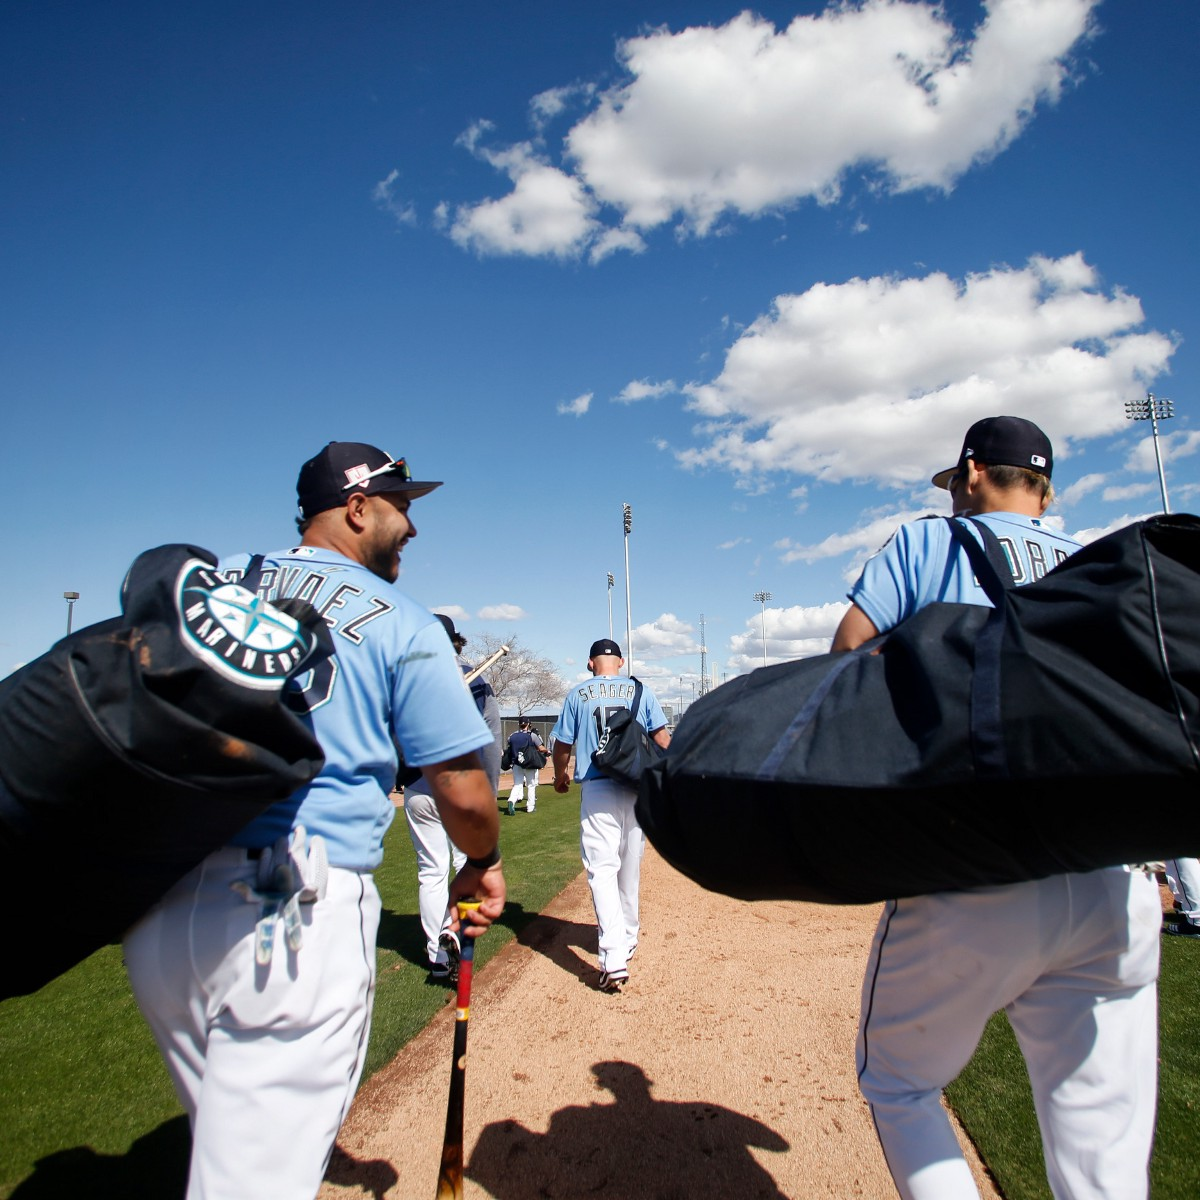 Mariners 2020 Spring Training: Important Dates